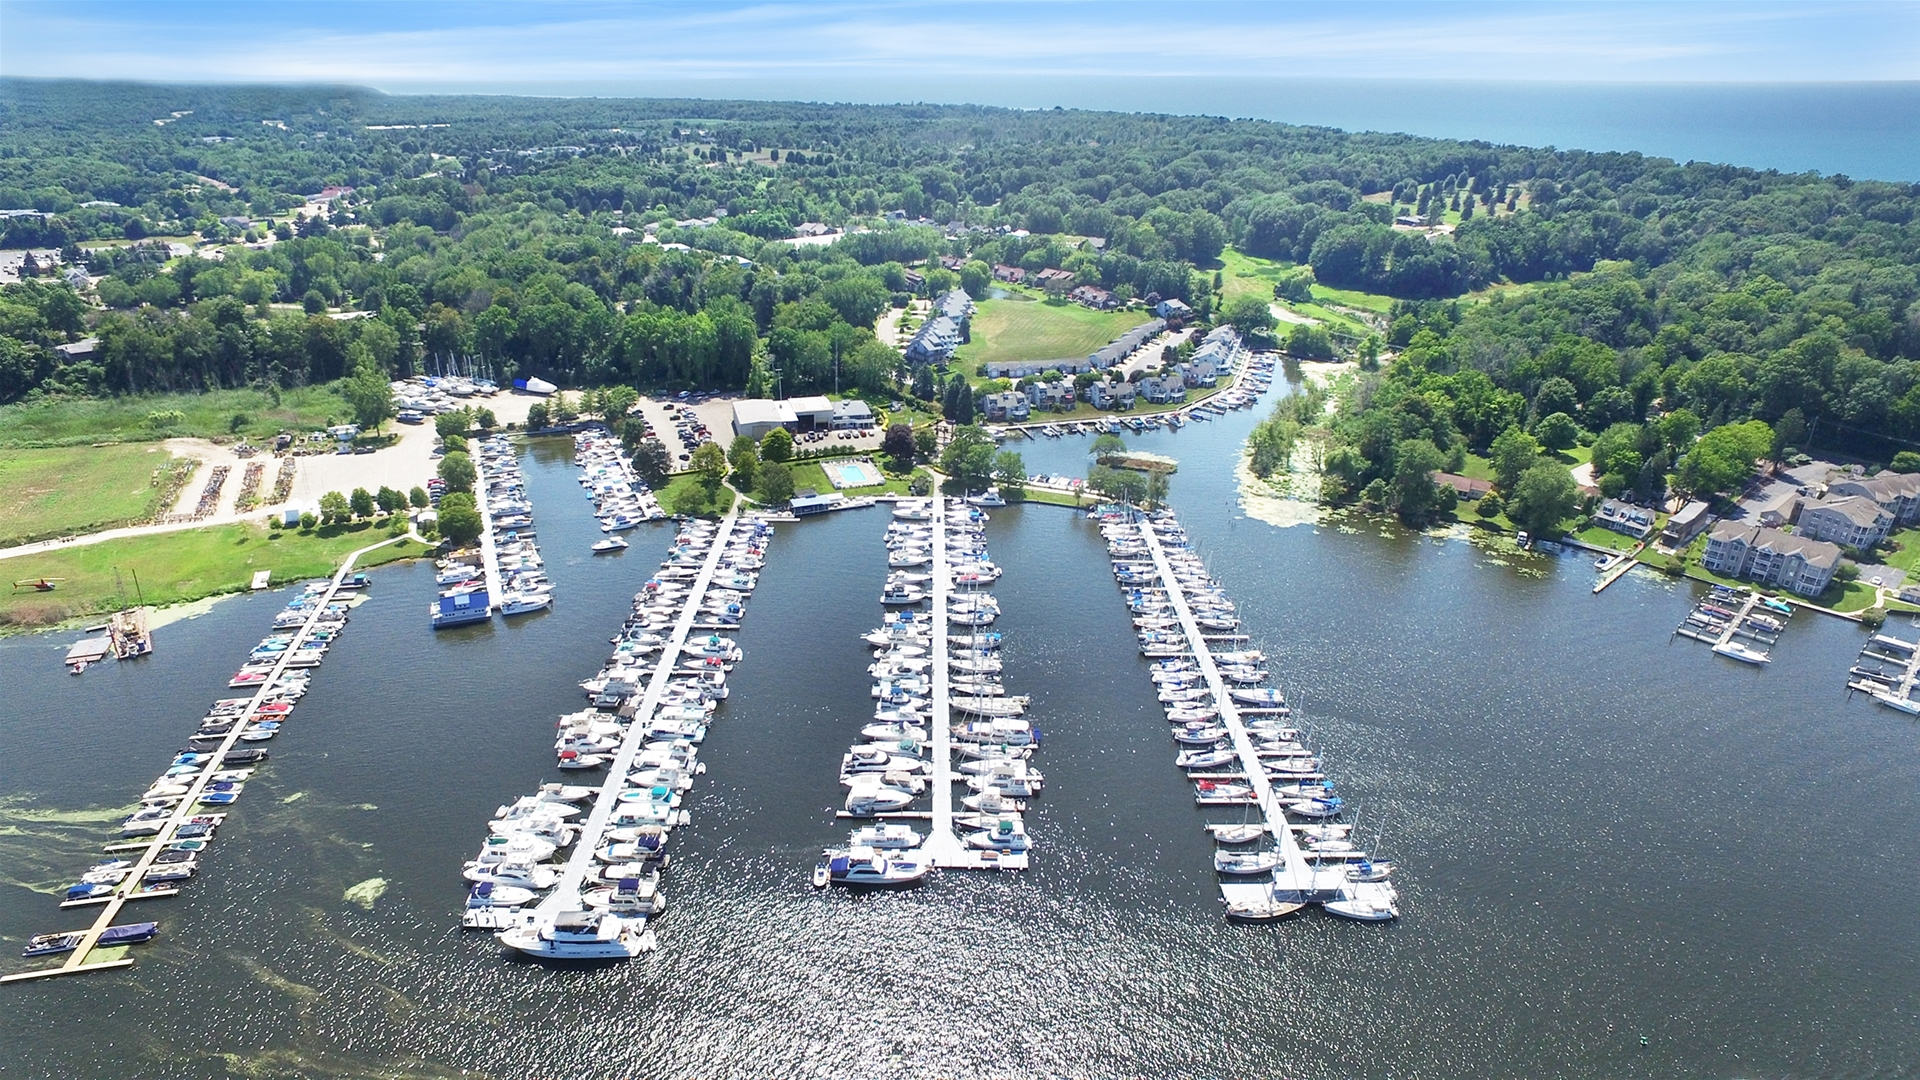 Dock Holiday is part of the Mariners Cove \/ Tower Marina association